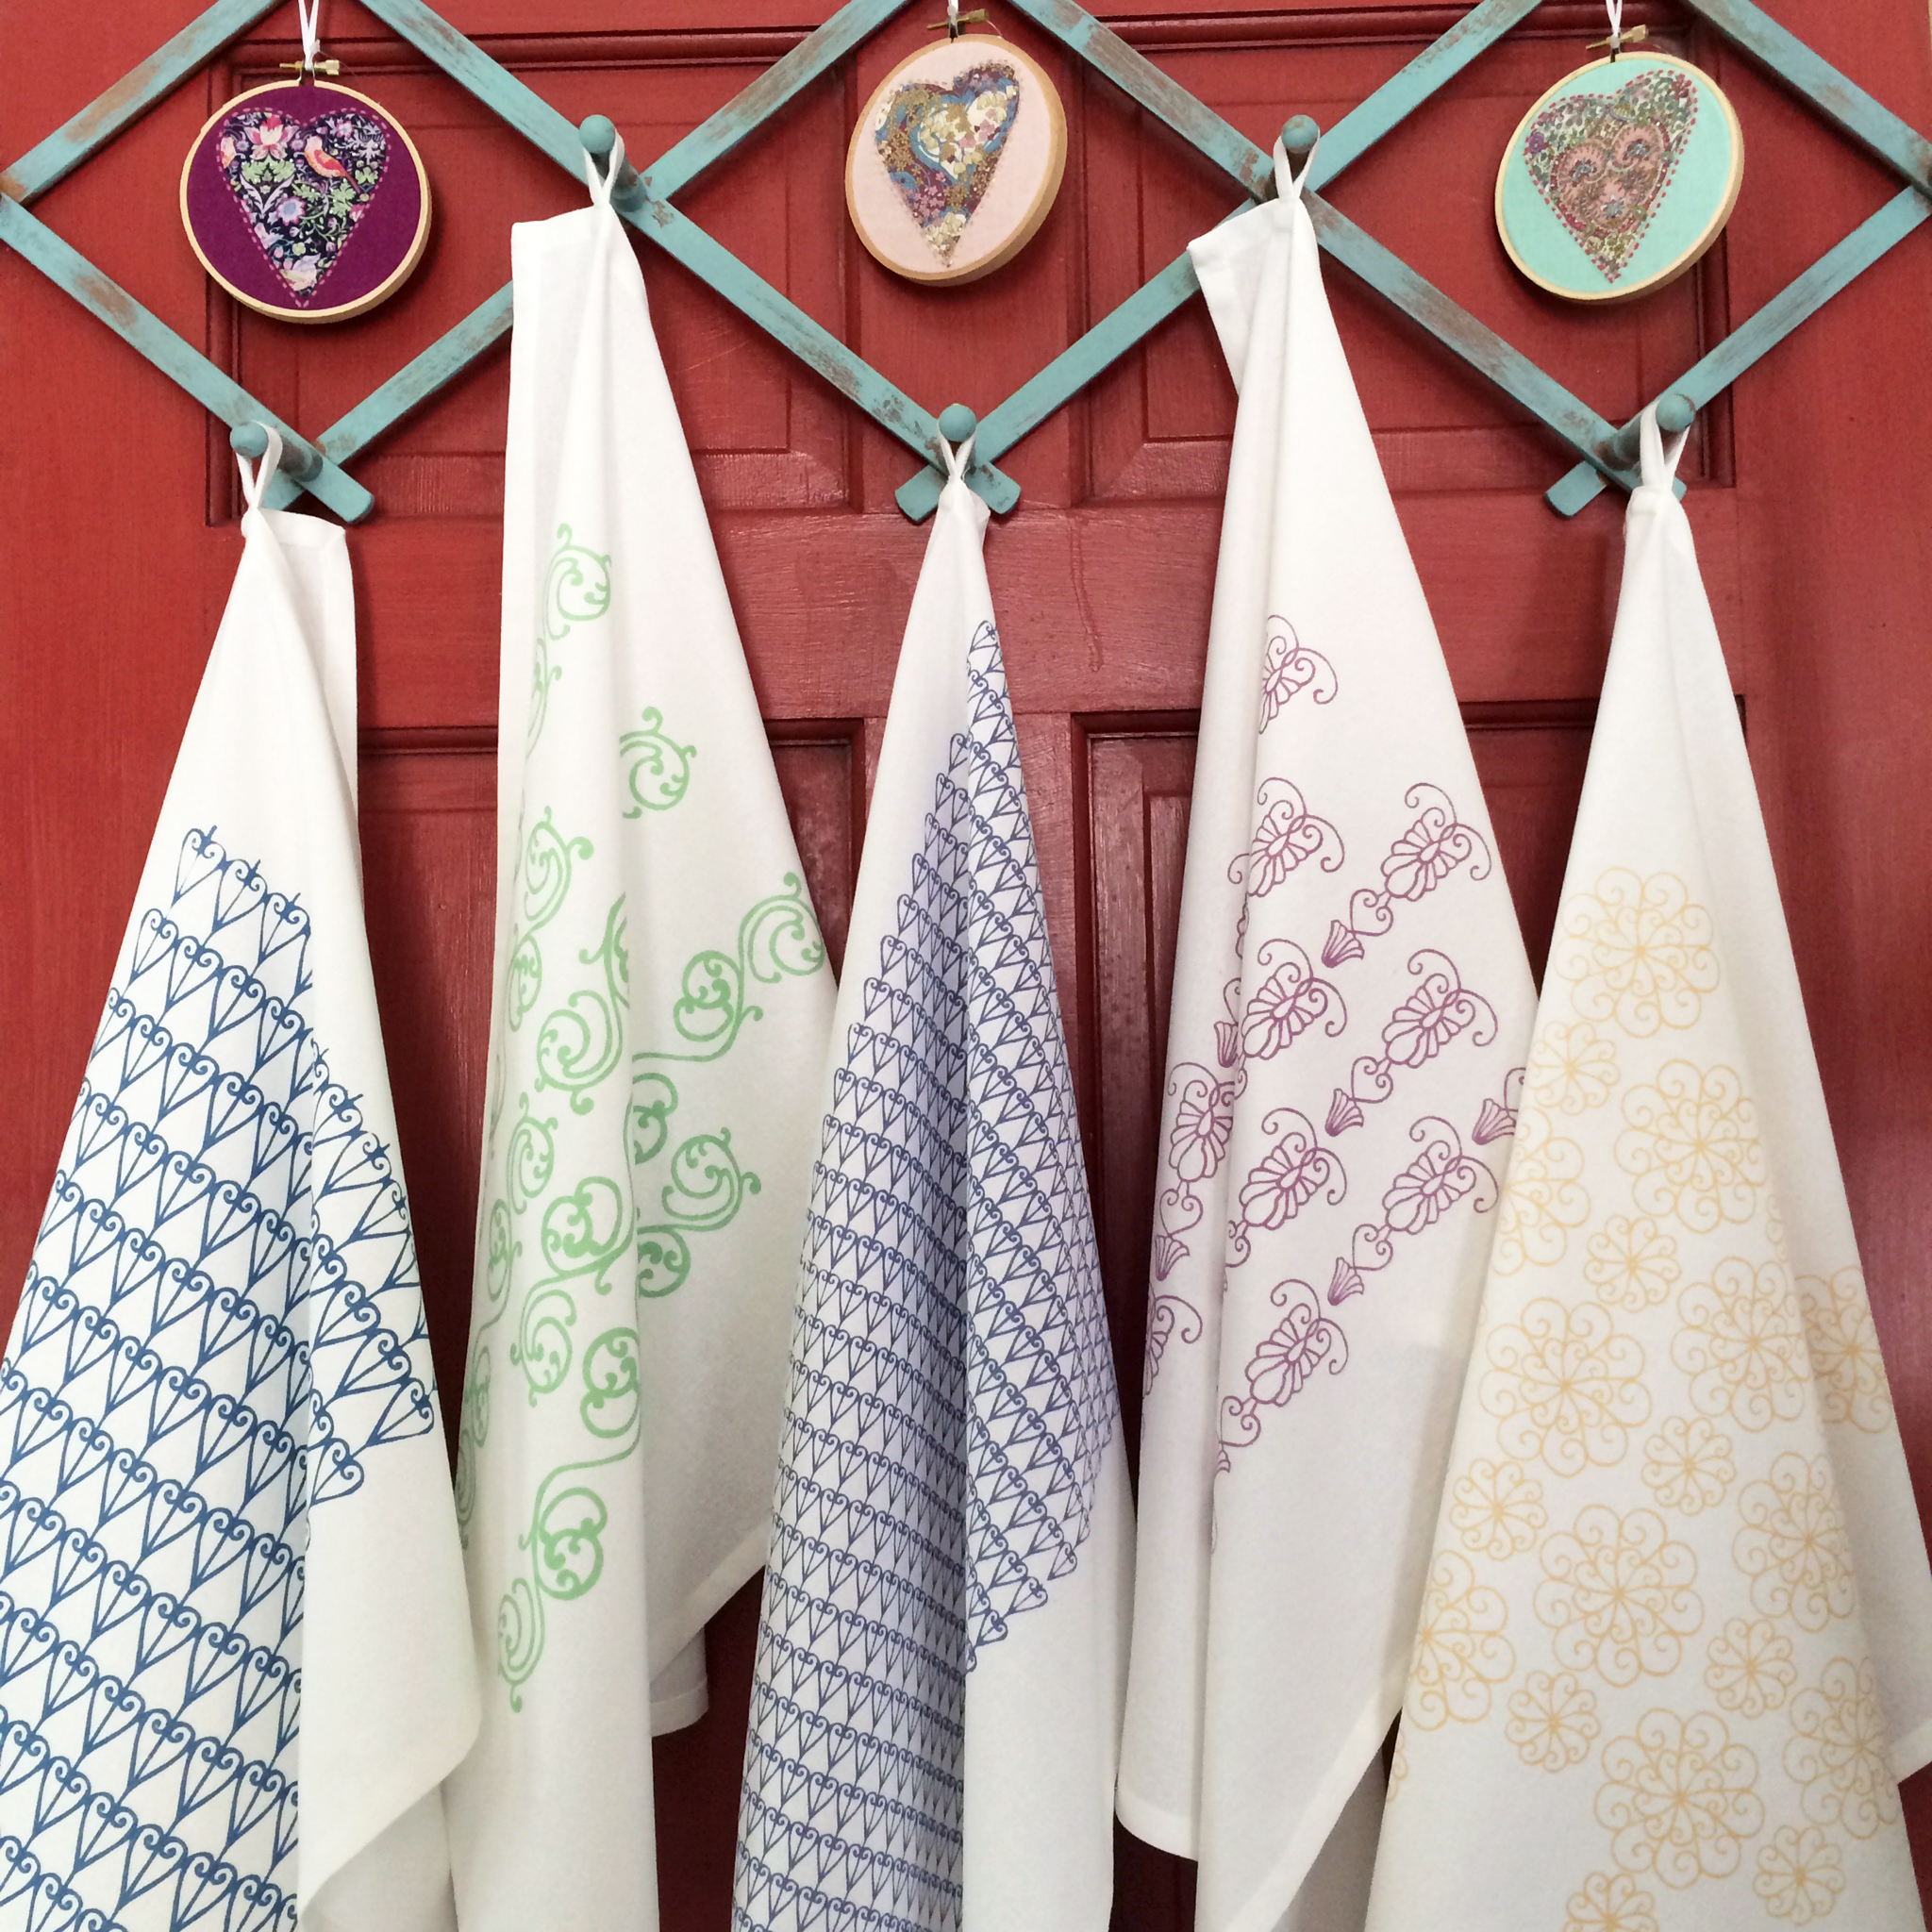 Hand Screen Printed Savannah Ironwork Series Tea Towels by For the Love of Pattern